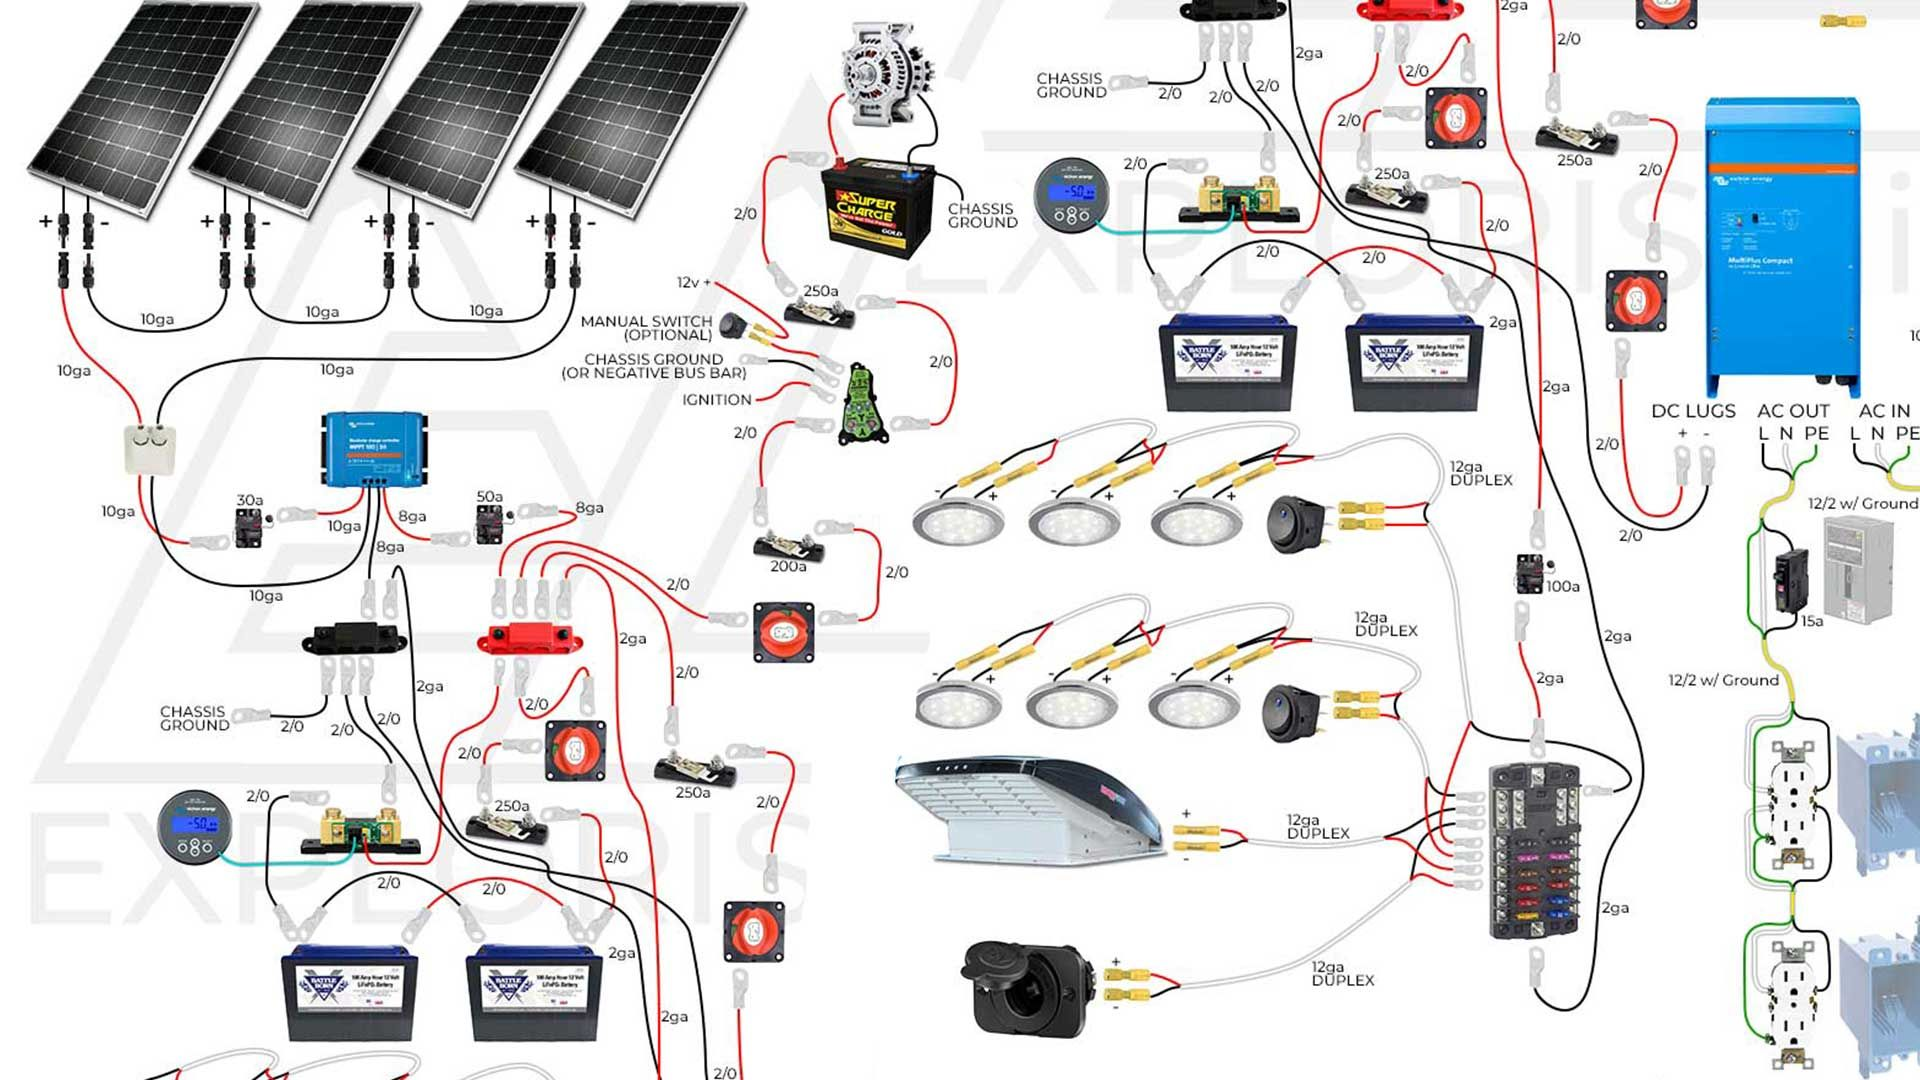 Diy Solar Wiring Diagrams For Campers Van S Rv S Solar Energy Diy Diy Solar Solar Power Diy